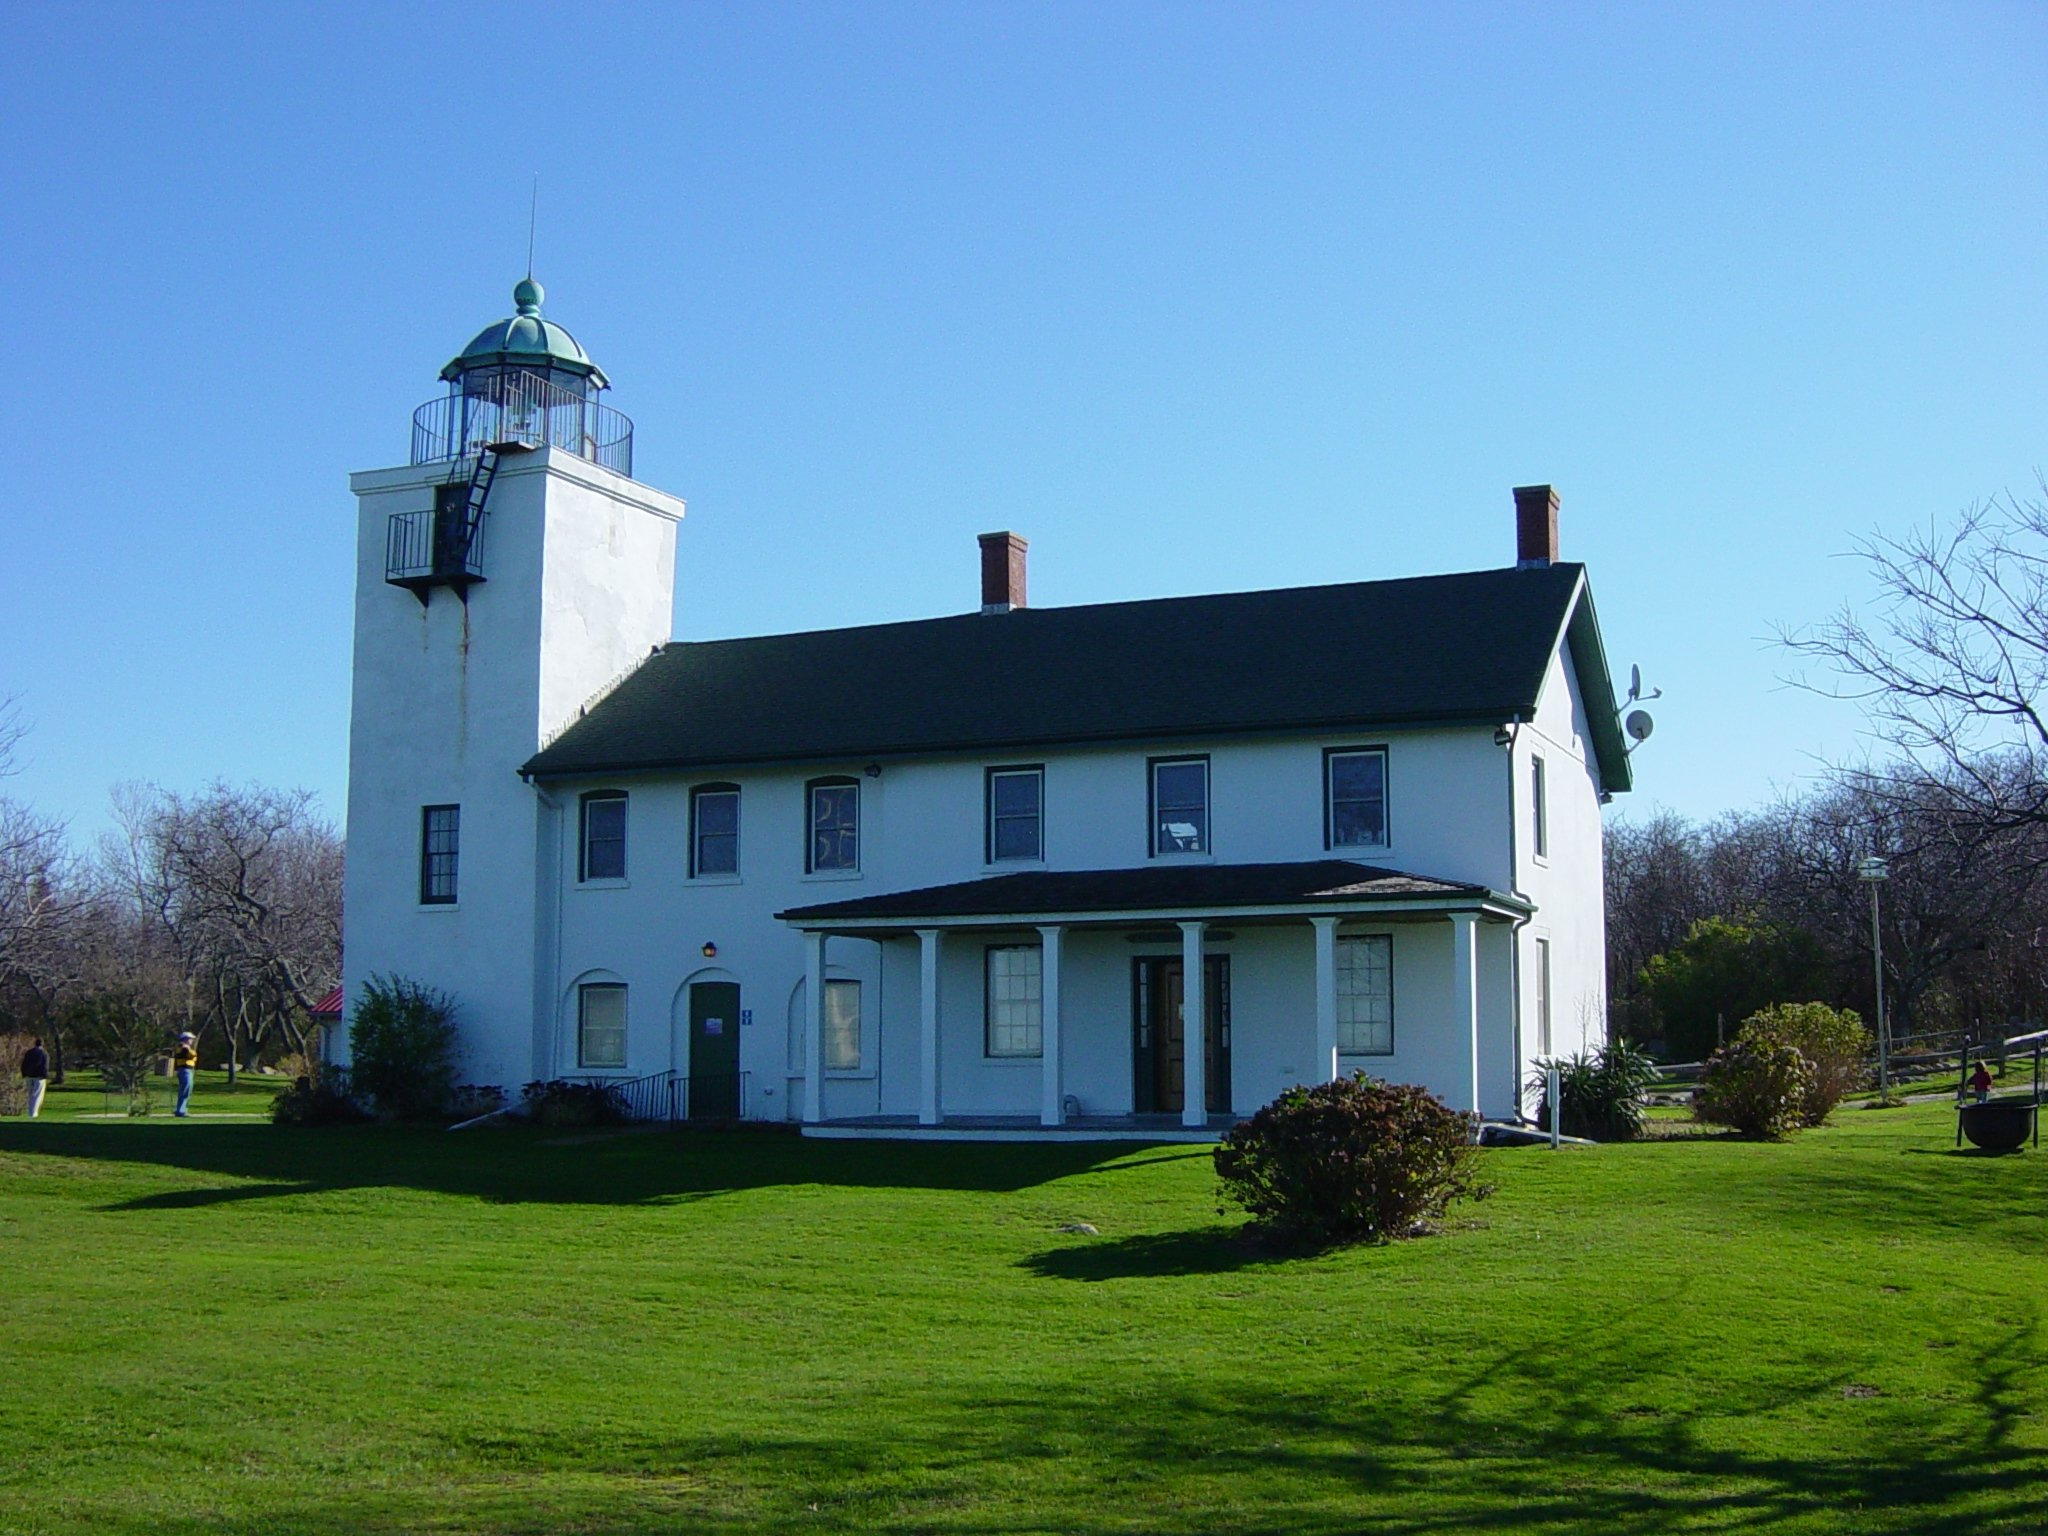 Horton Point Lighthouse This picture courtesy of The Historical Marker Database, HMbd.org Picture by Mike Wintermantel, November 24, 2006.